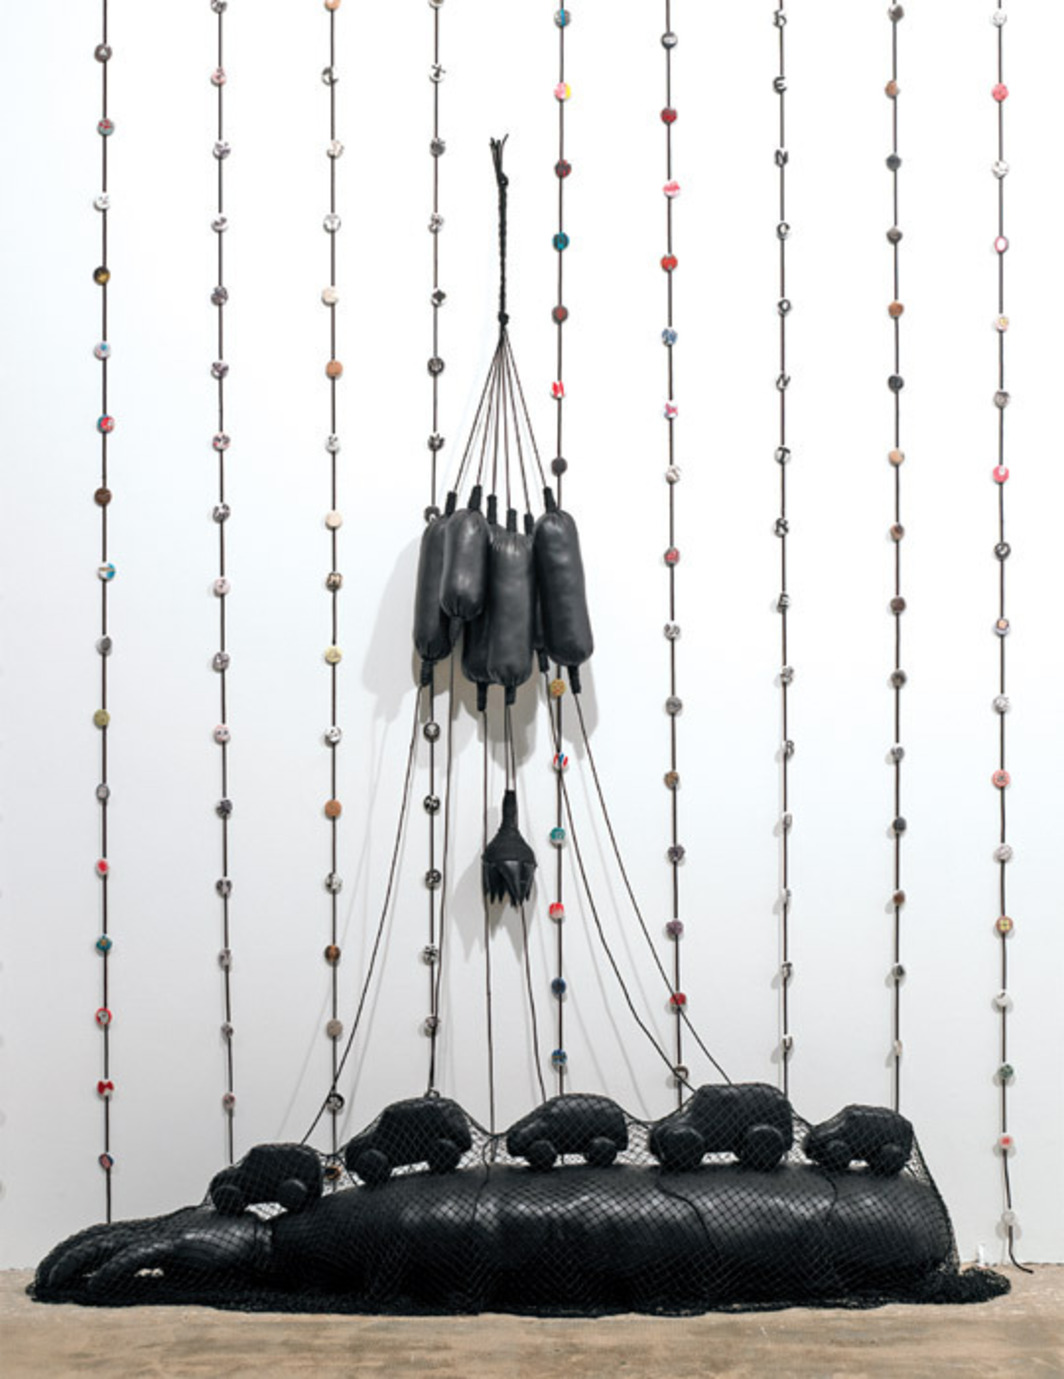 "Annette Messager, Bras/Voitures (Arm, Cars), 2009, mixed media, 97 5/8 x 78 3/4 x 19 5/8""."